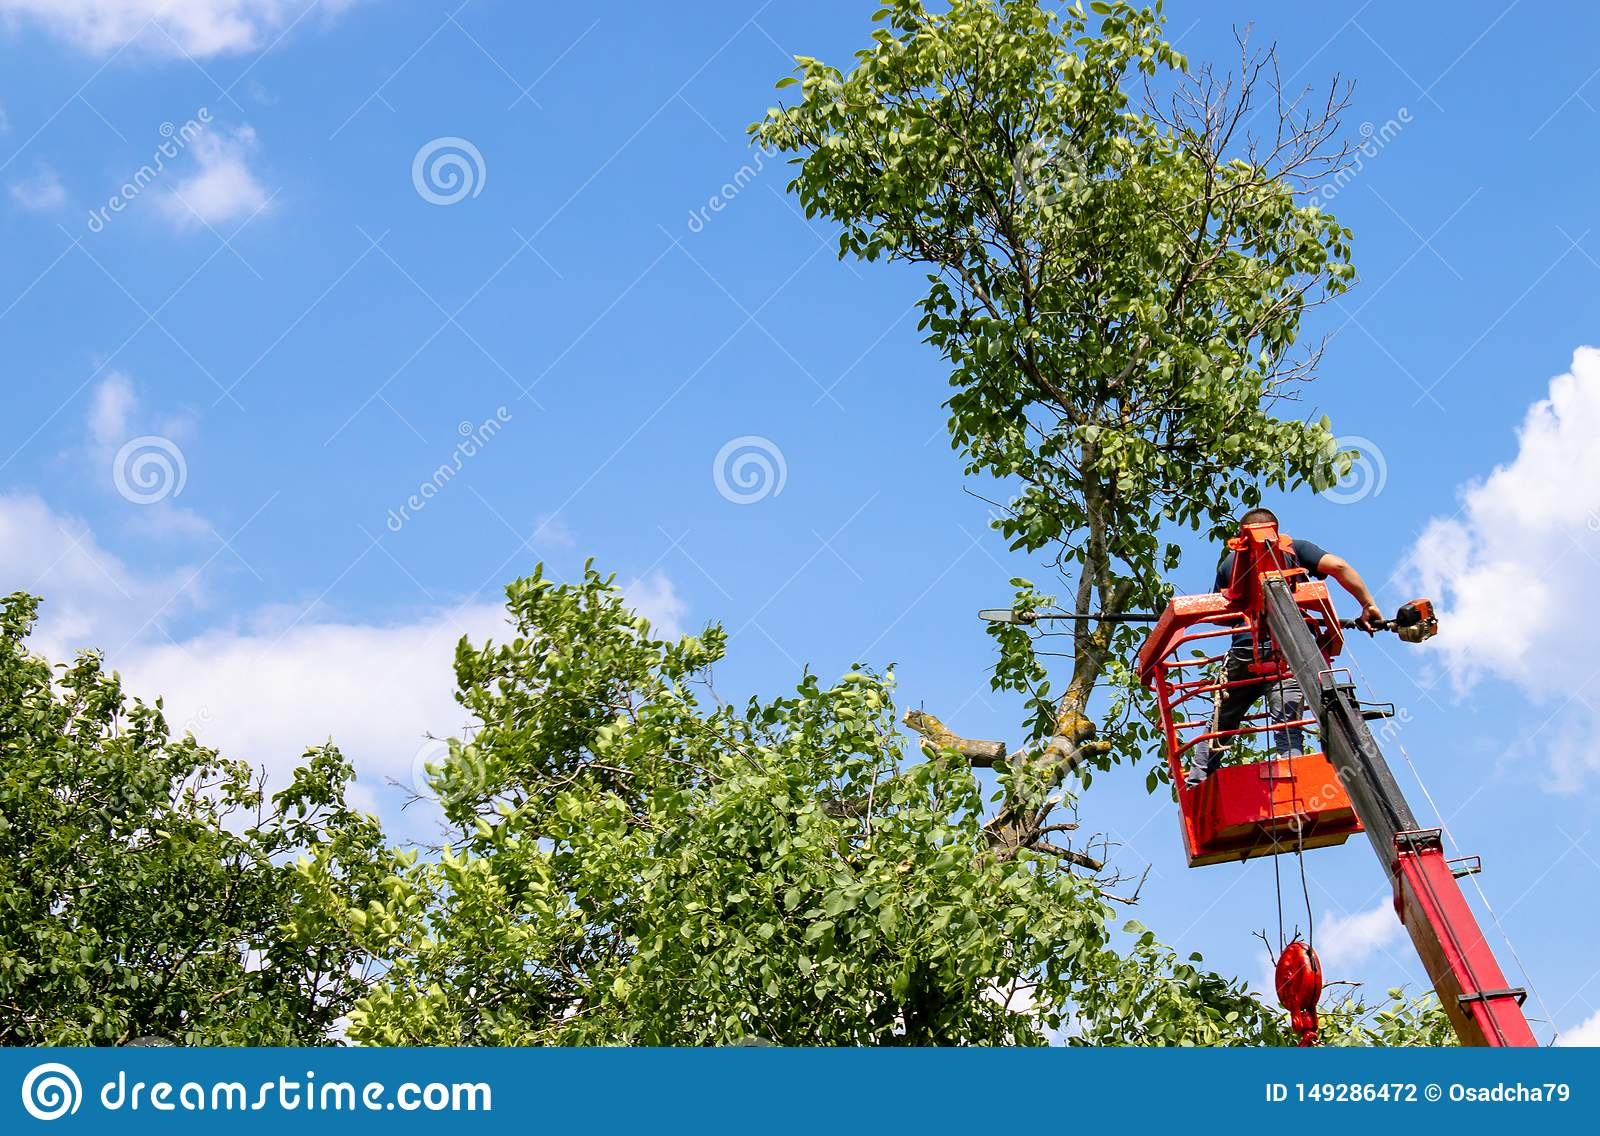 Pruning trees and sawing a man with a chainsaw, a man at high altitude between the branches of an old large tree